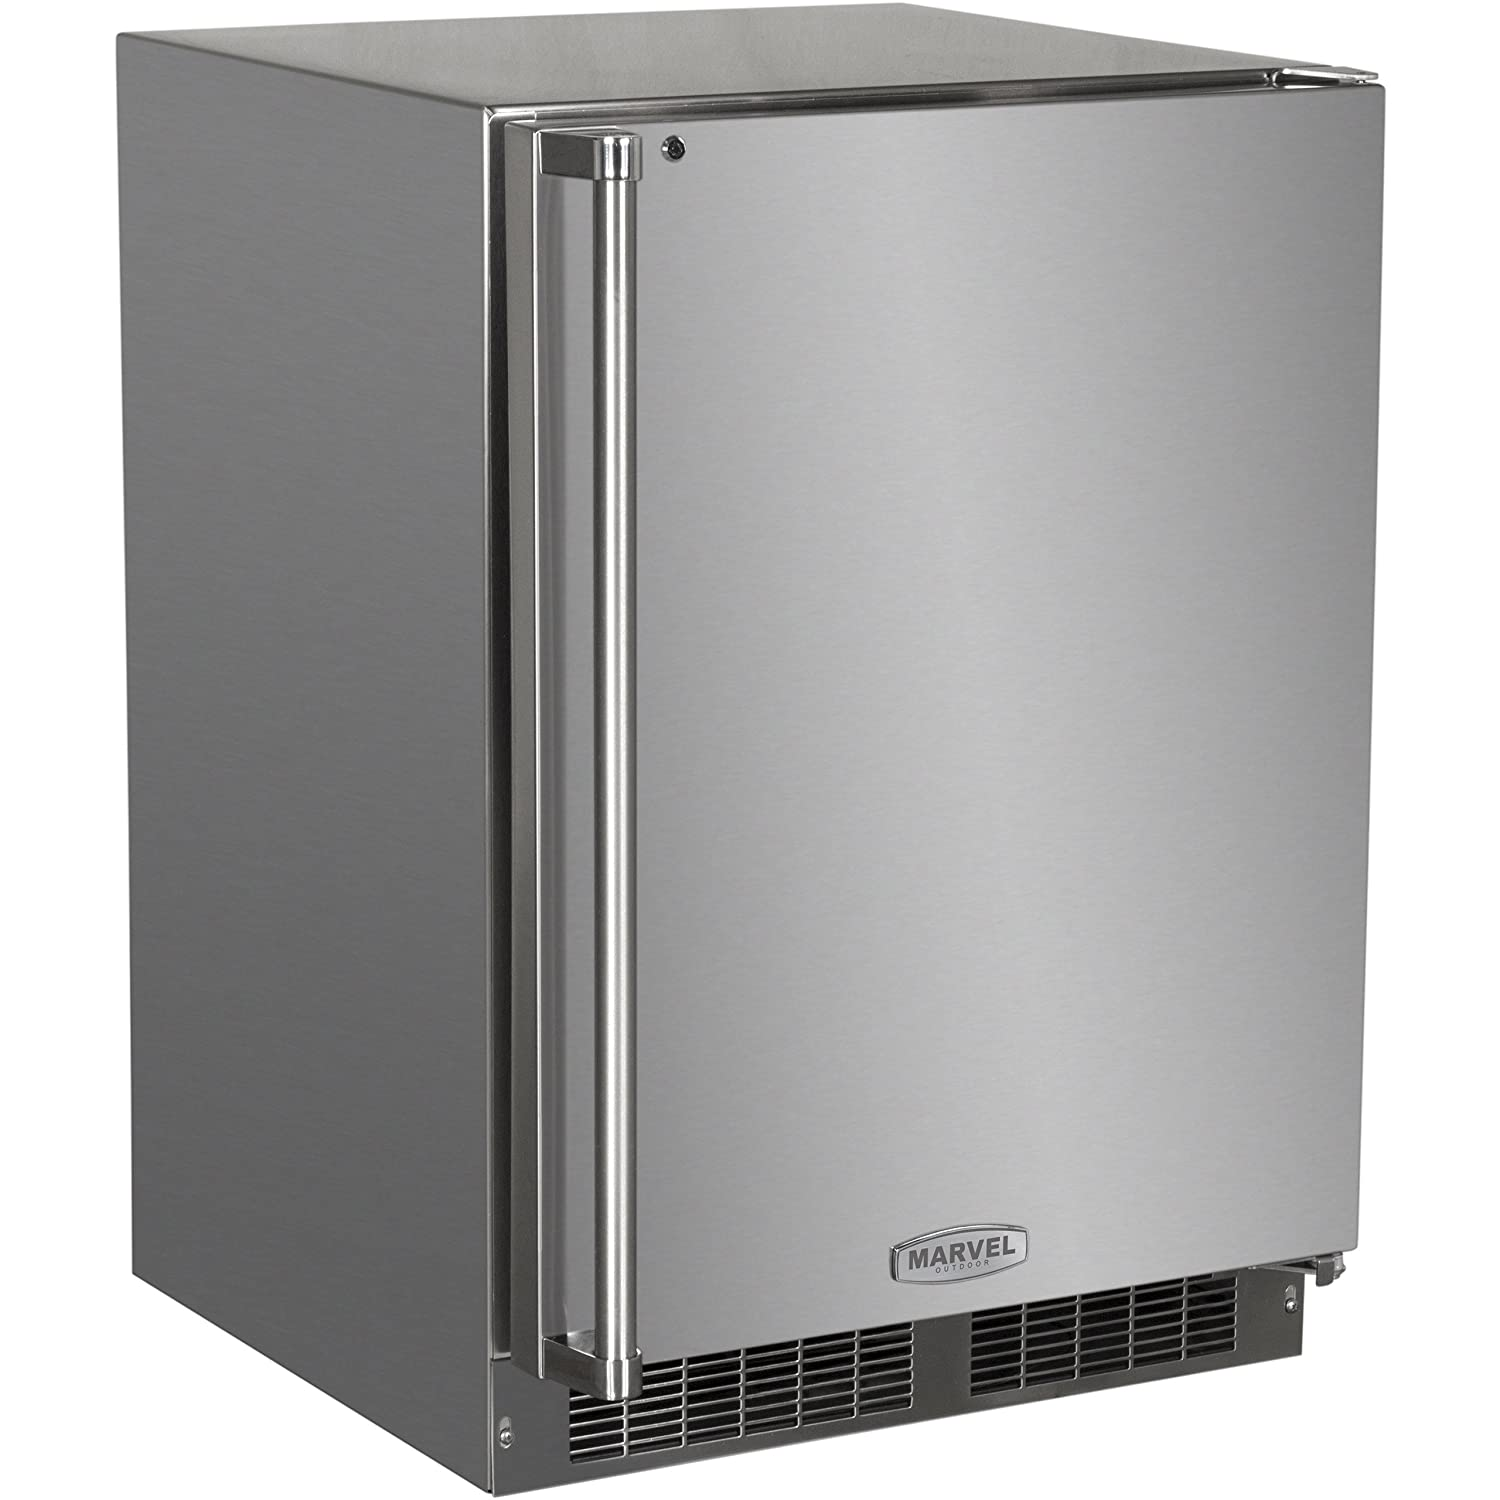 AGA Marvel MO24RAS1RS Outdoor Refrigerator With Lock, Right Hinge Stainless  Steel Door, 24 Inch